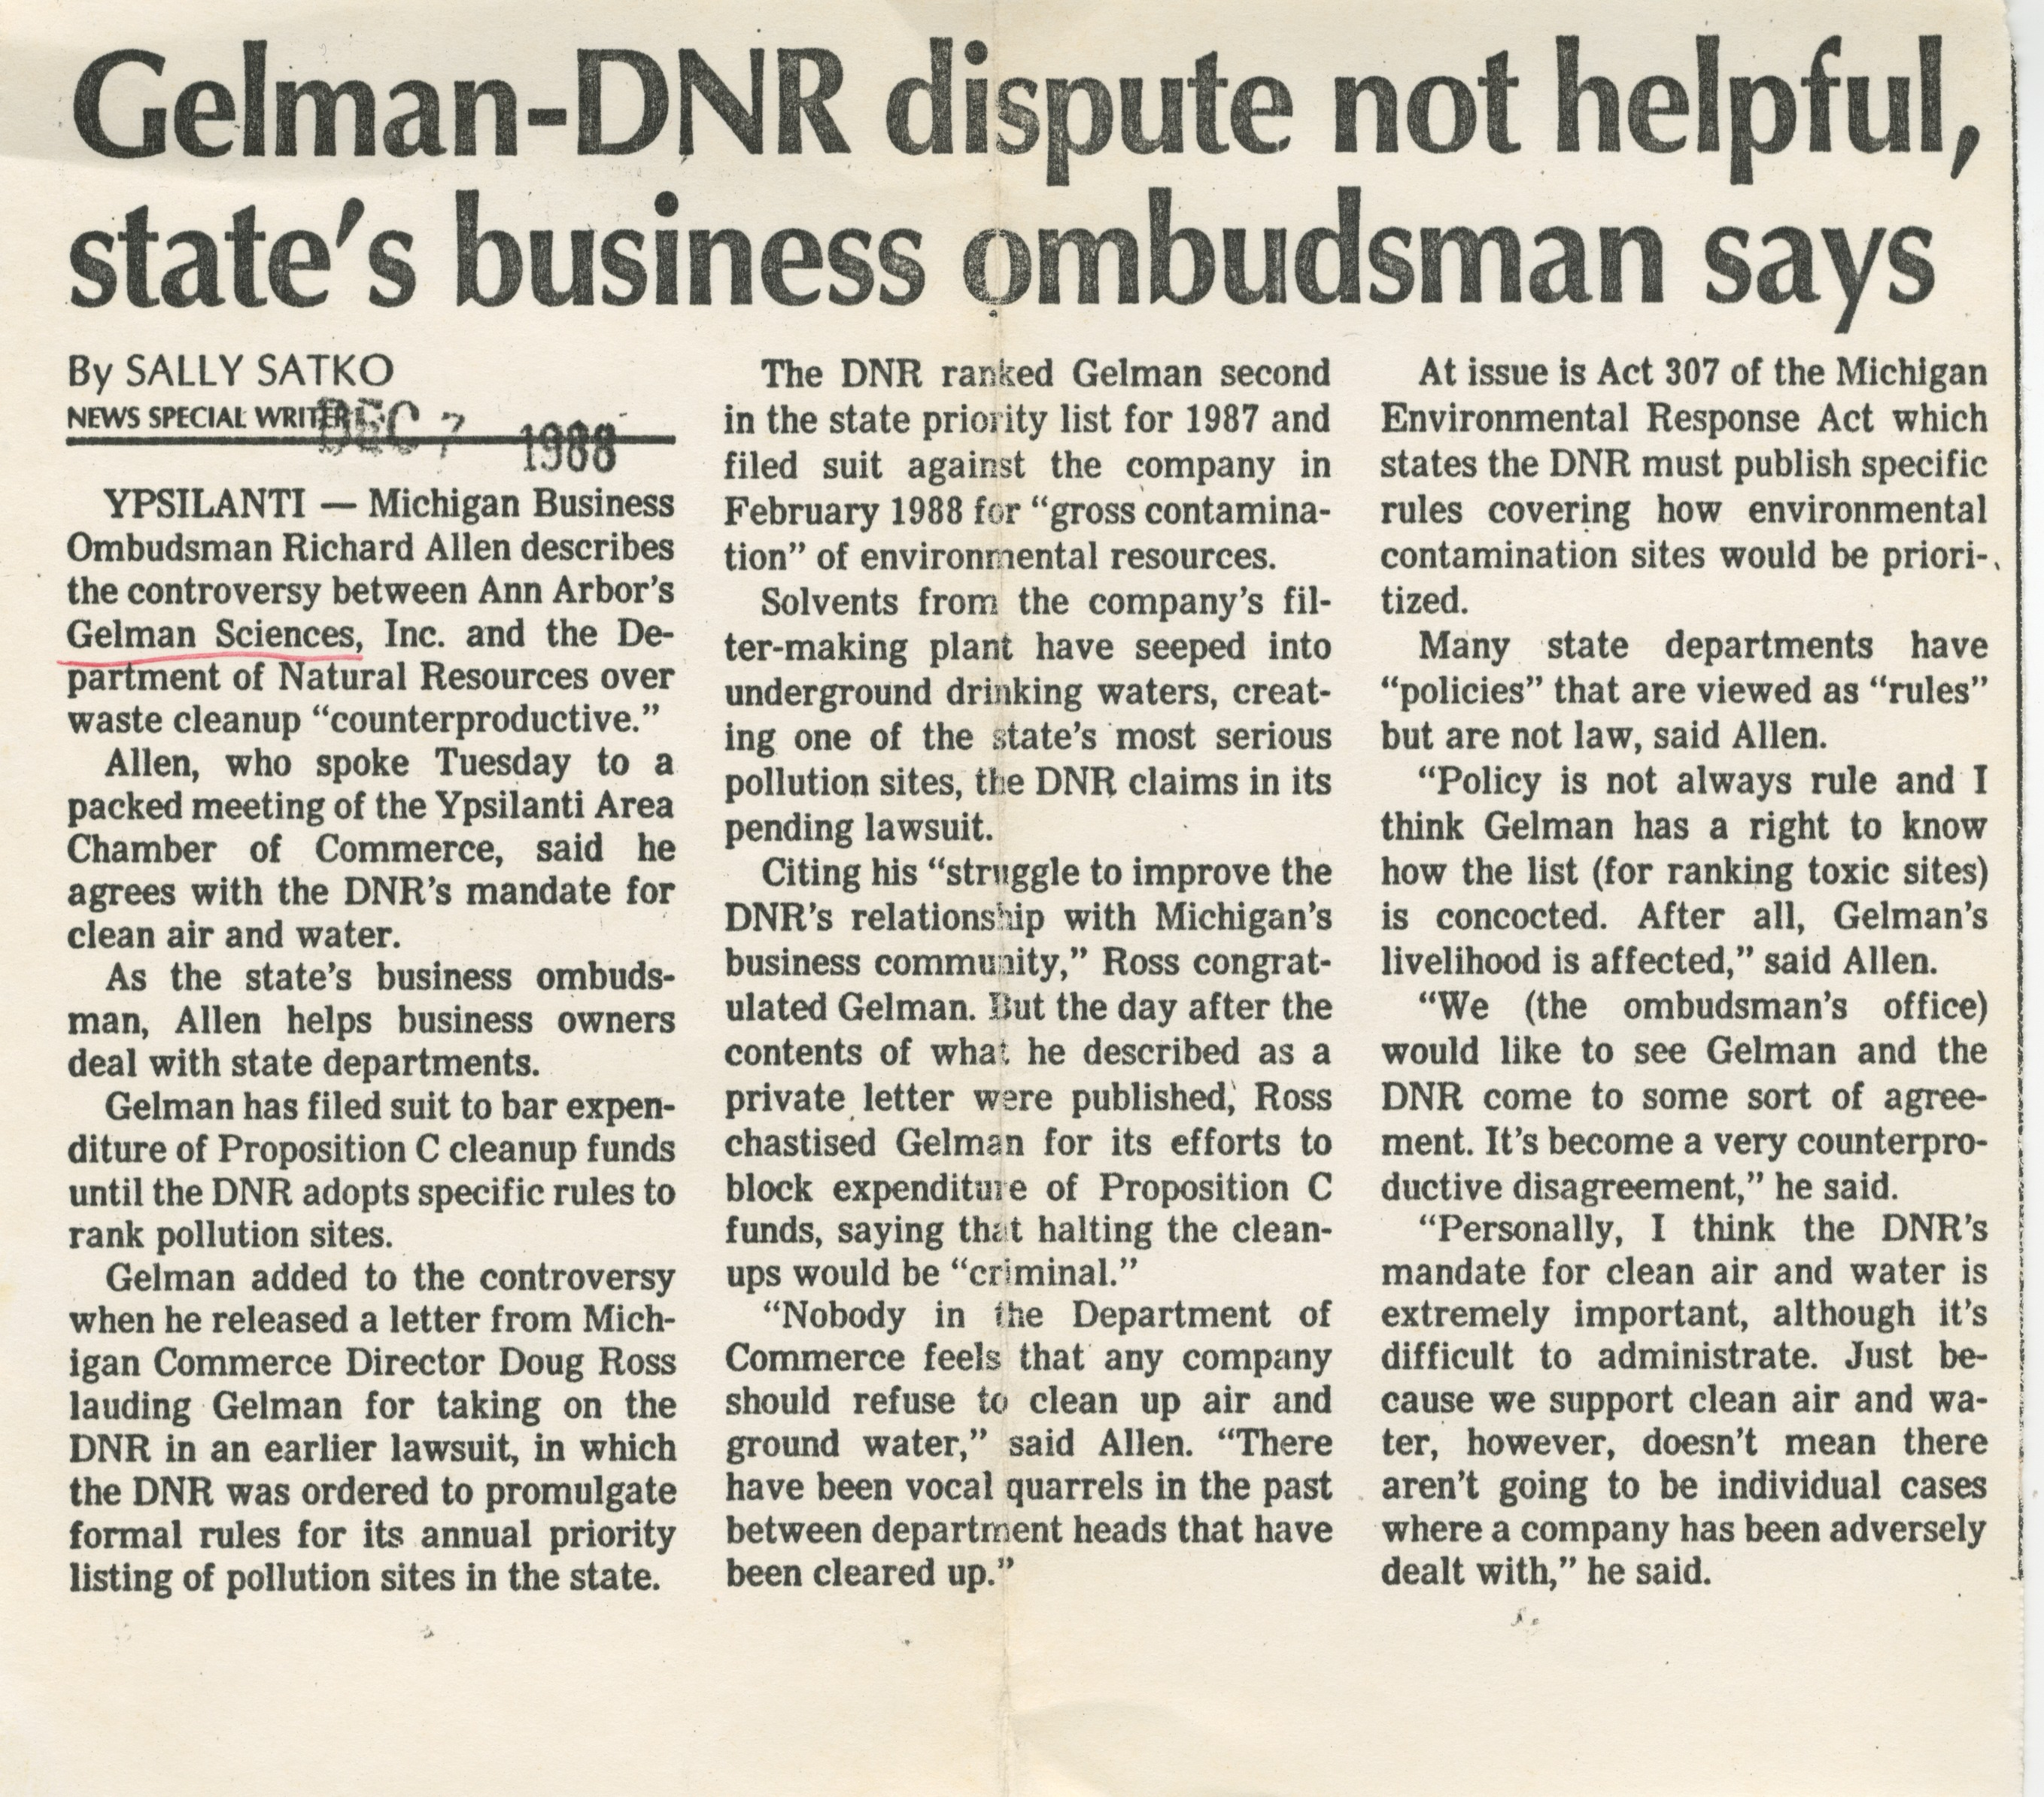 Gelman -DNR Dispute Not Helpful, State's Business Ombudsman Says image